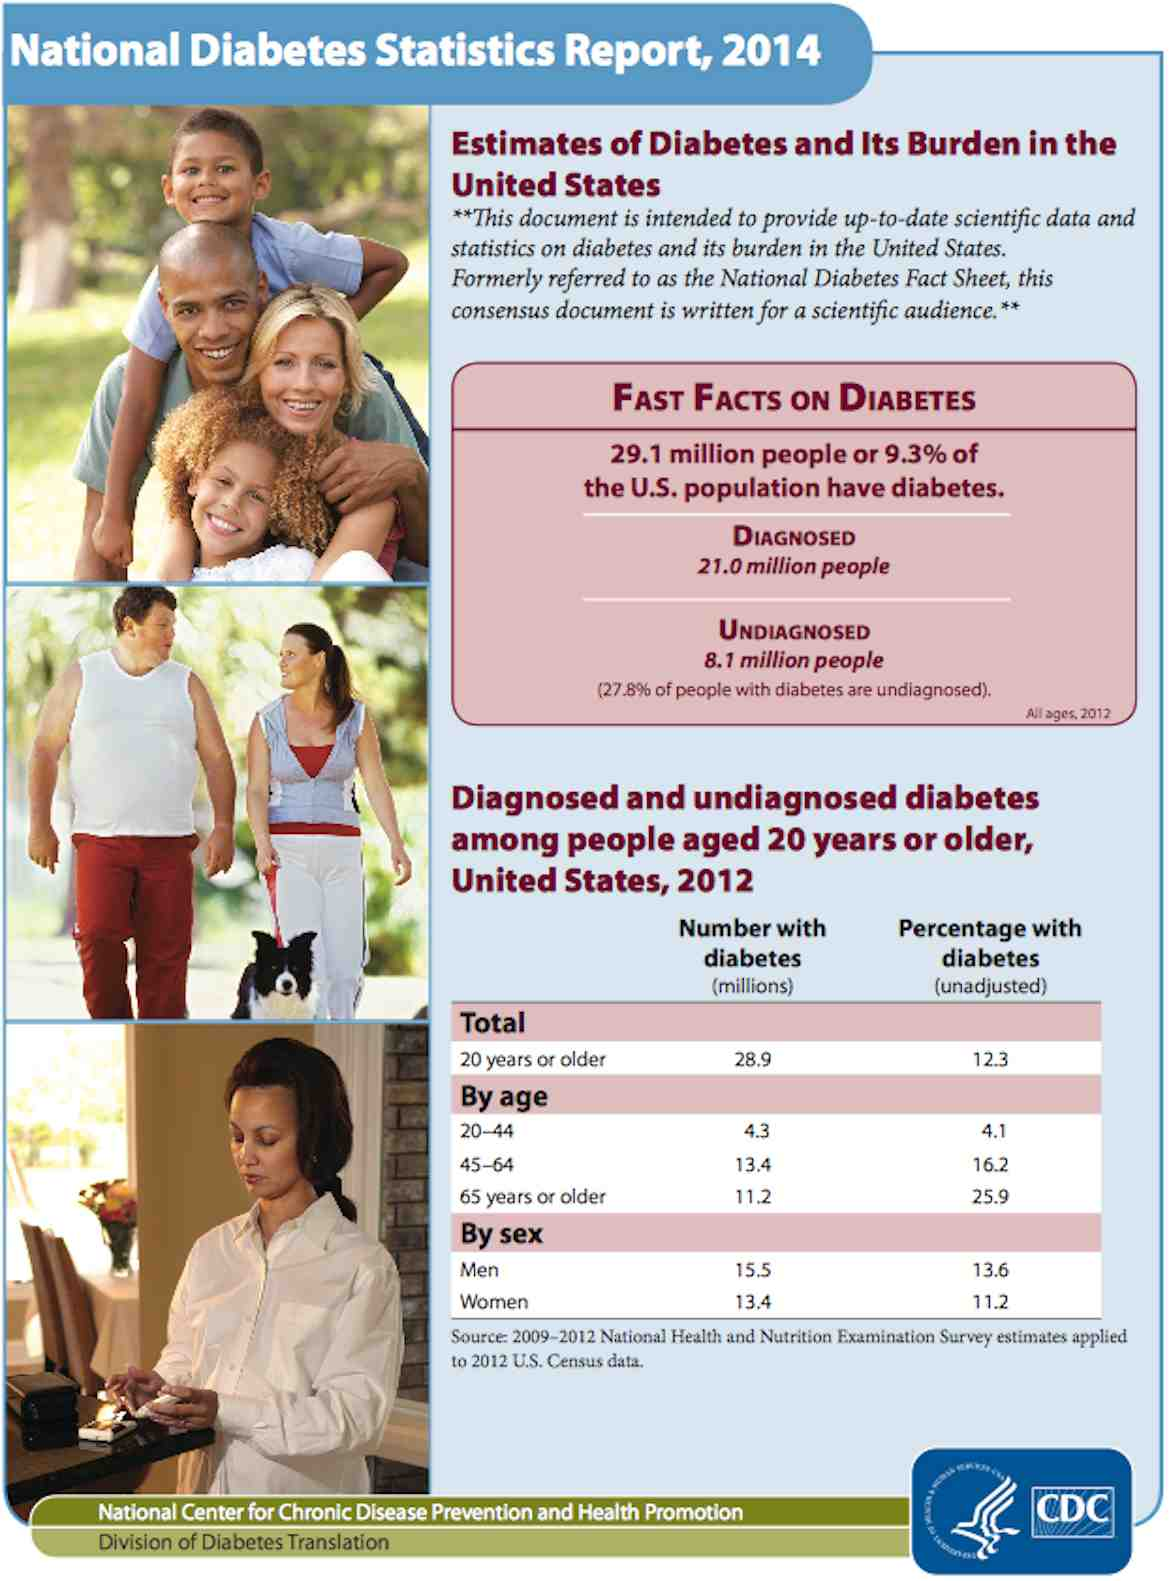 Estimates of Diabetes and its Burden in the United States